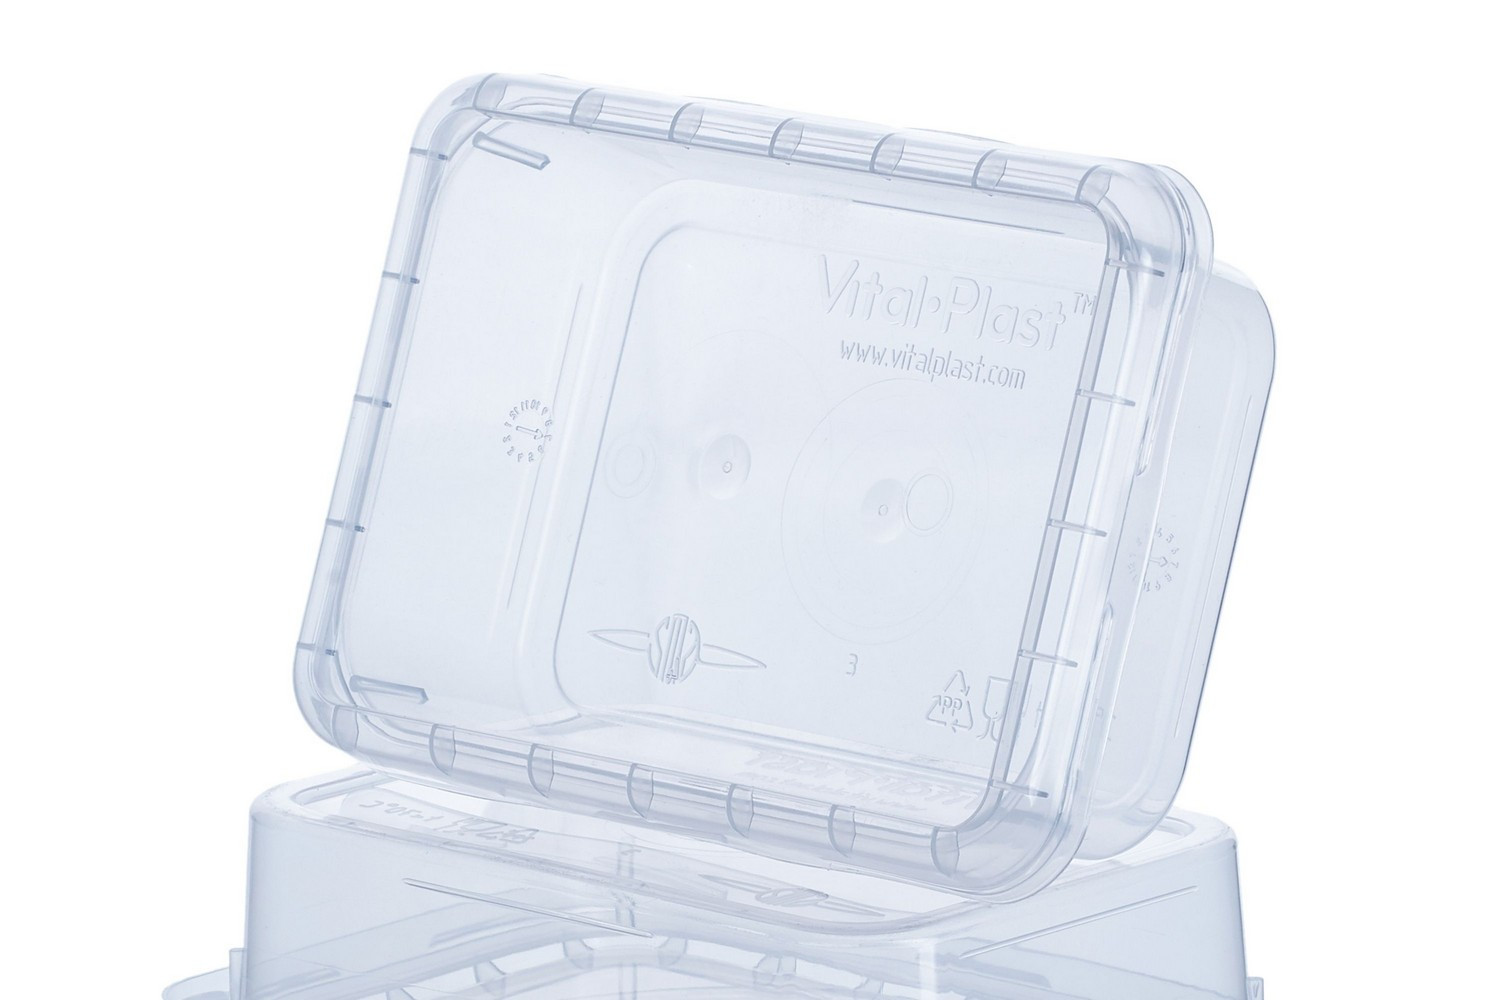 Rectangular high quality food non-food 180 ml sealable containers with lid